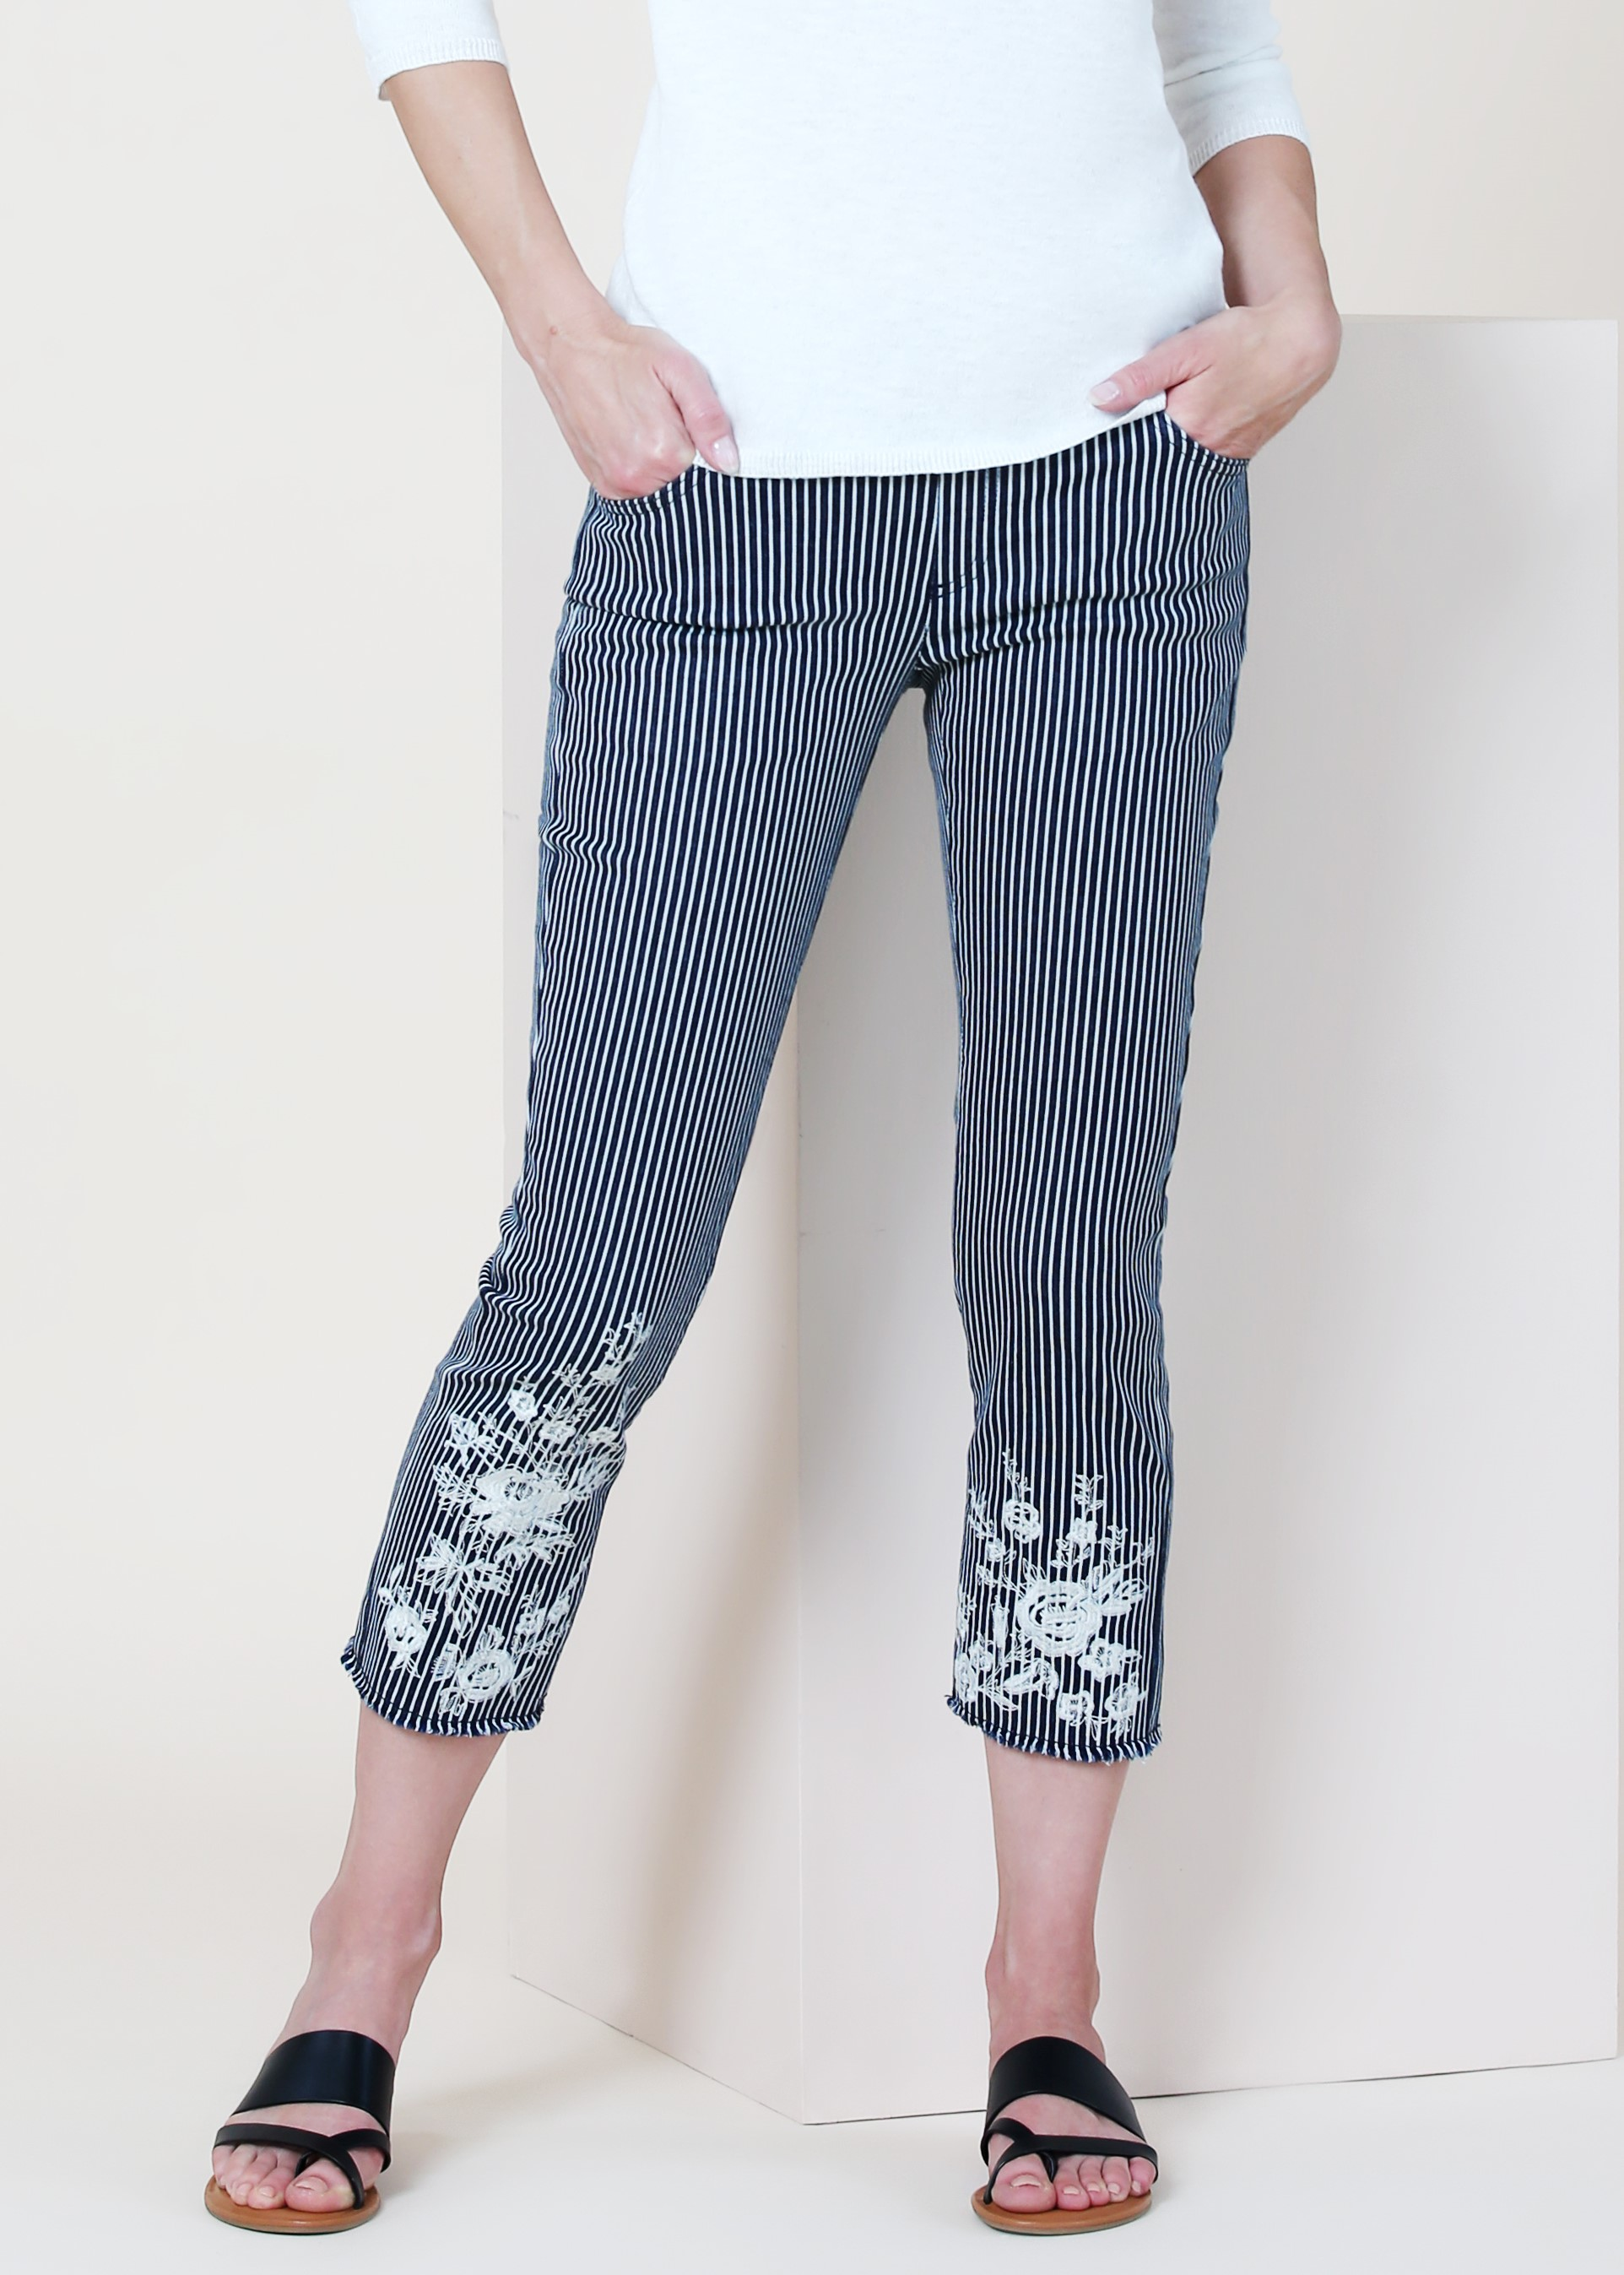 Lisette L. Crop Straight Leg Pants Style 802992 Ticking Stripe Denim Color Navy/White Lines